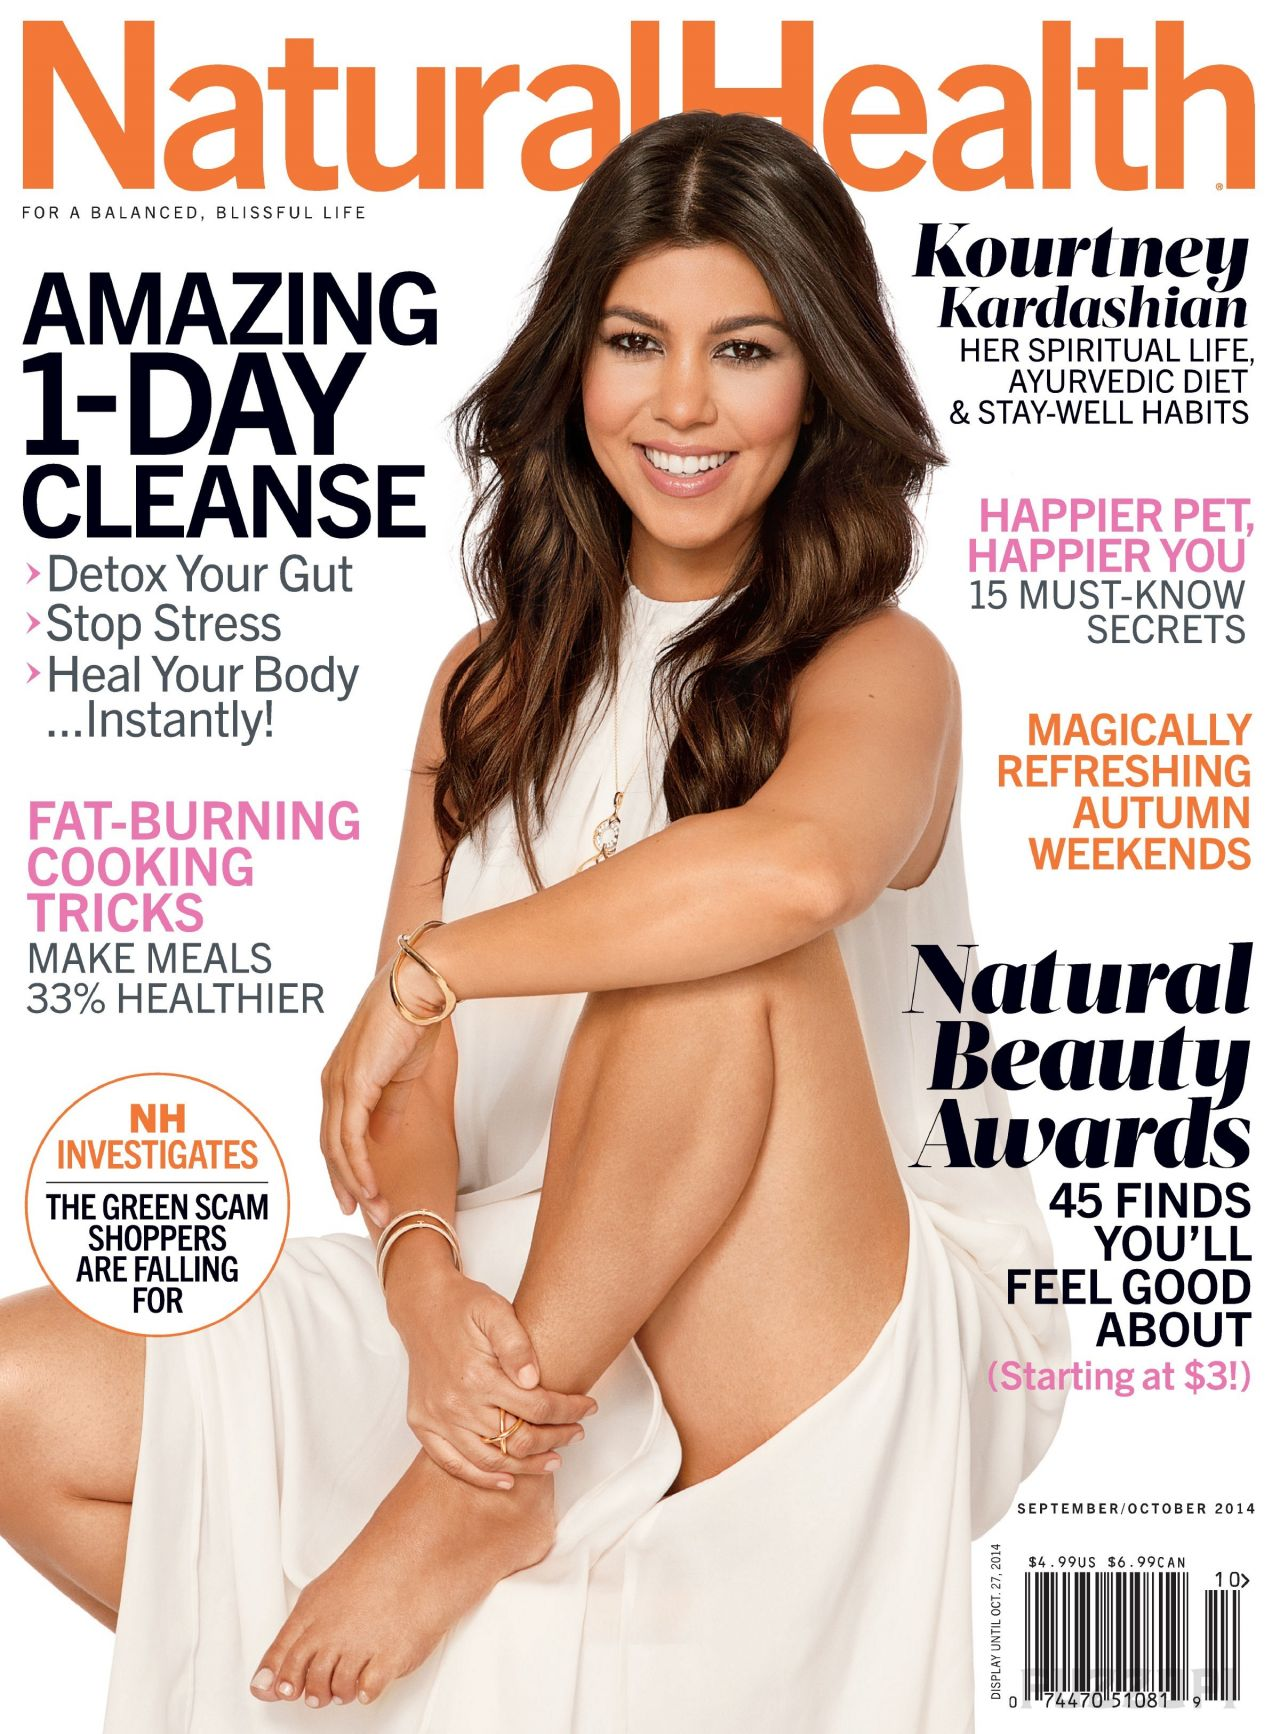 Kourtney Kardashian - Natural Health Magazine - September/October 2014 Cover